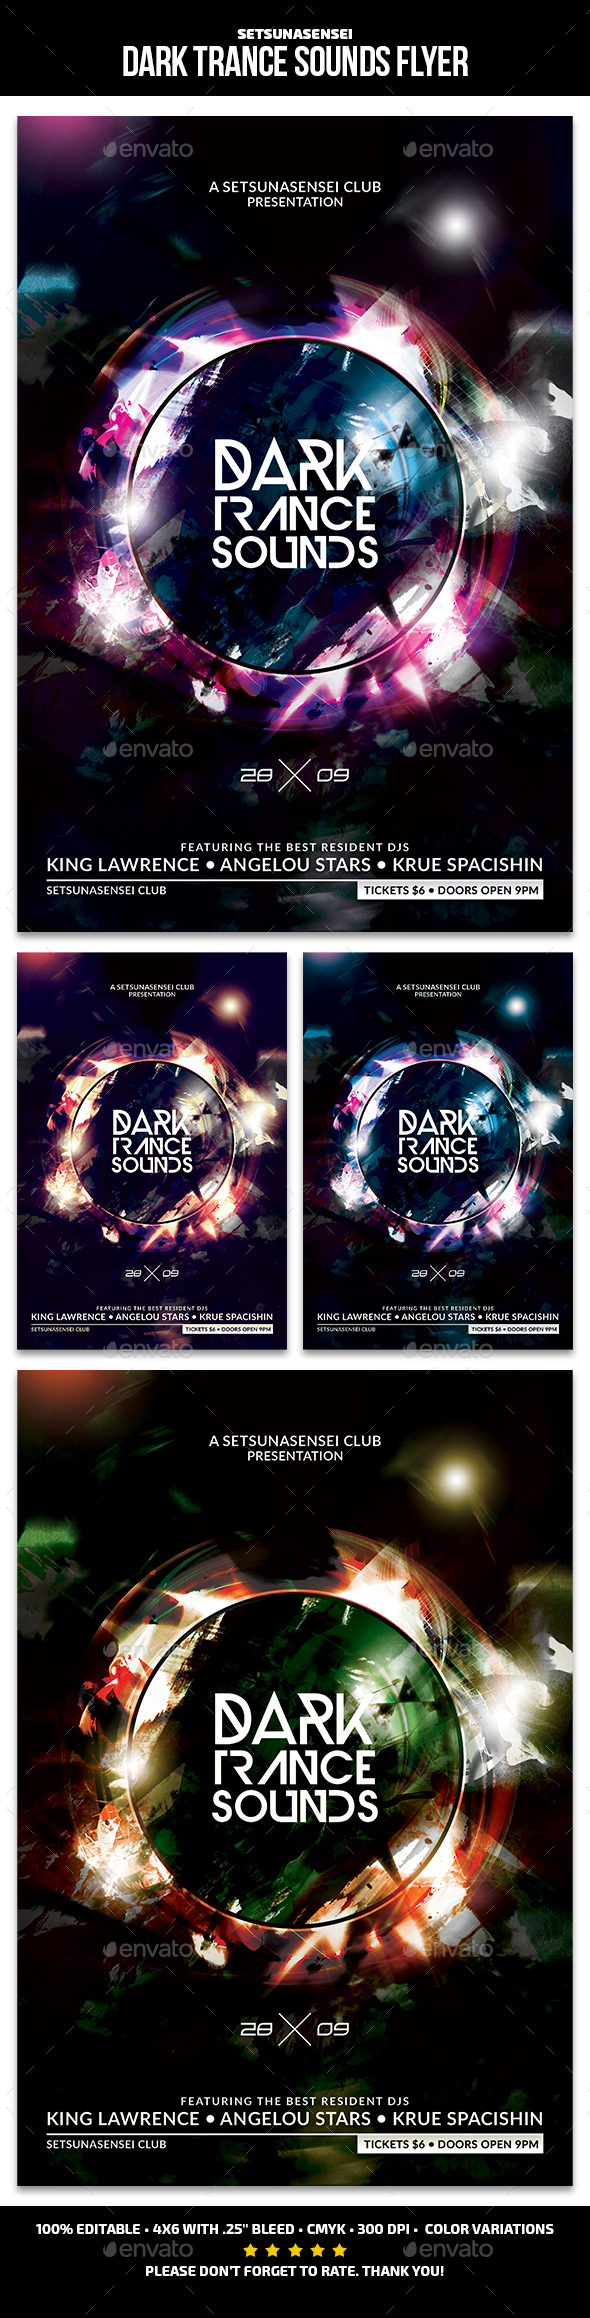 Dark Trance Sounds Flyer - Clubs & Parties Events